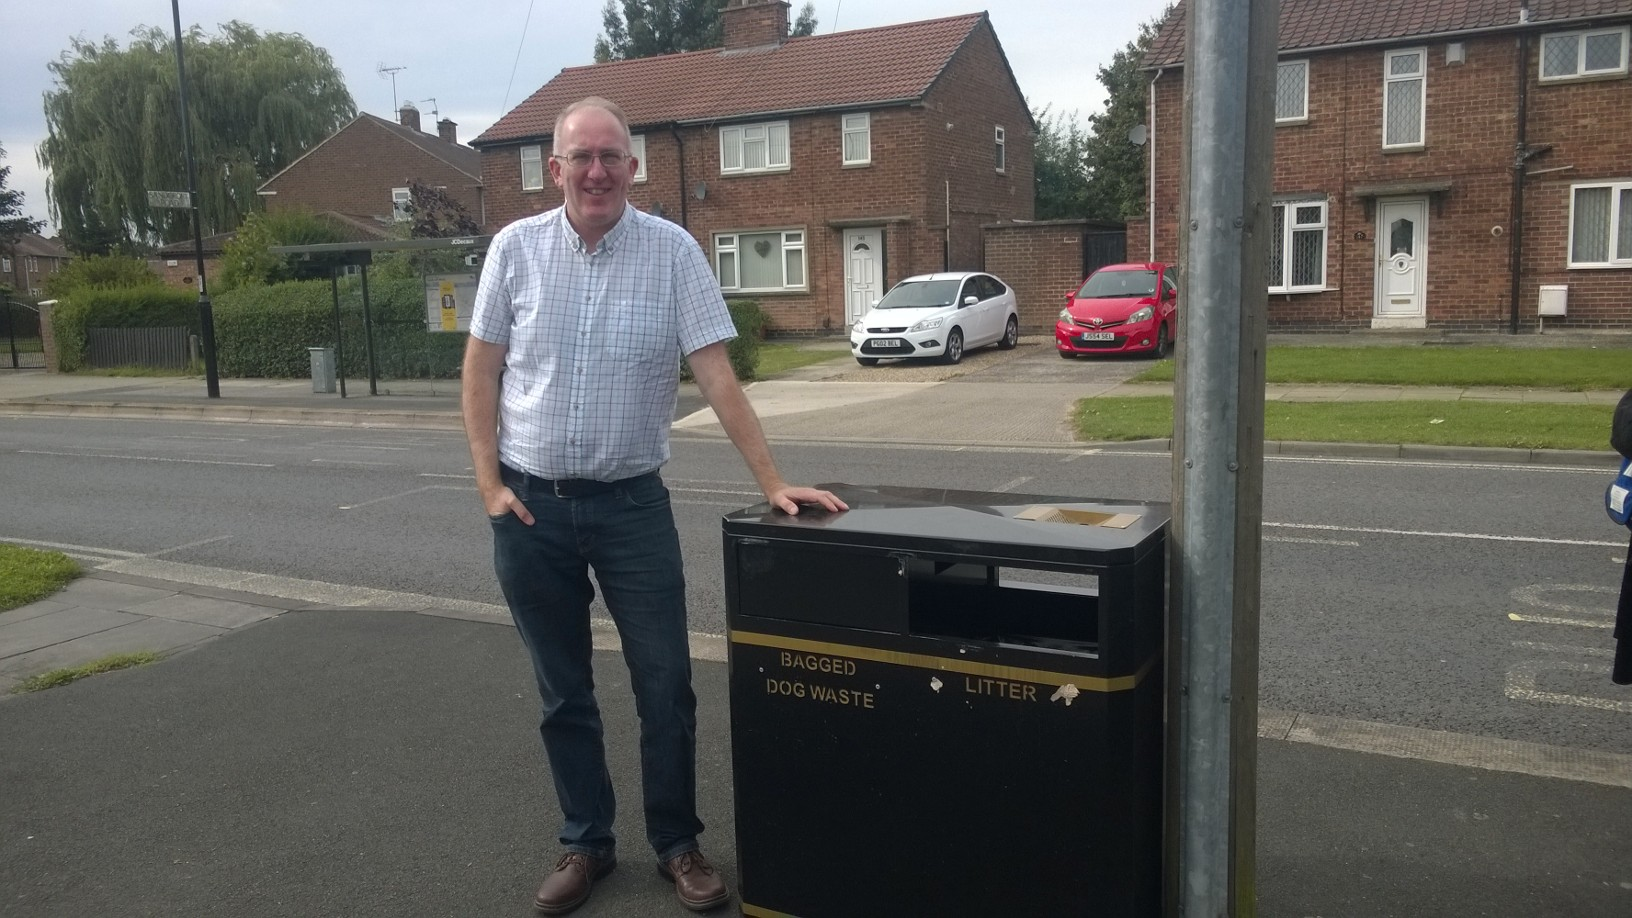 New bin at junction of Chaloners Road and Sandcroft Road